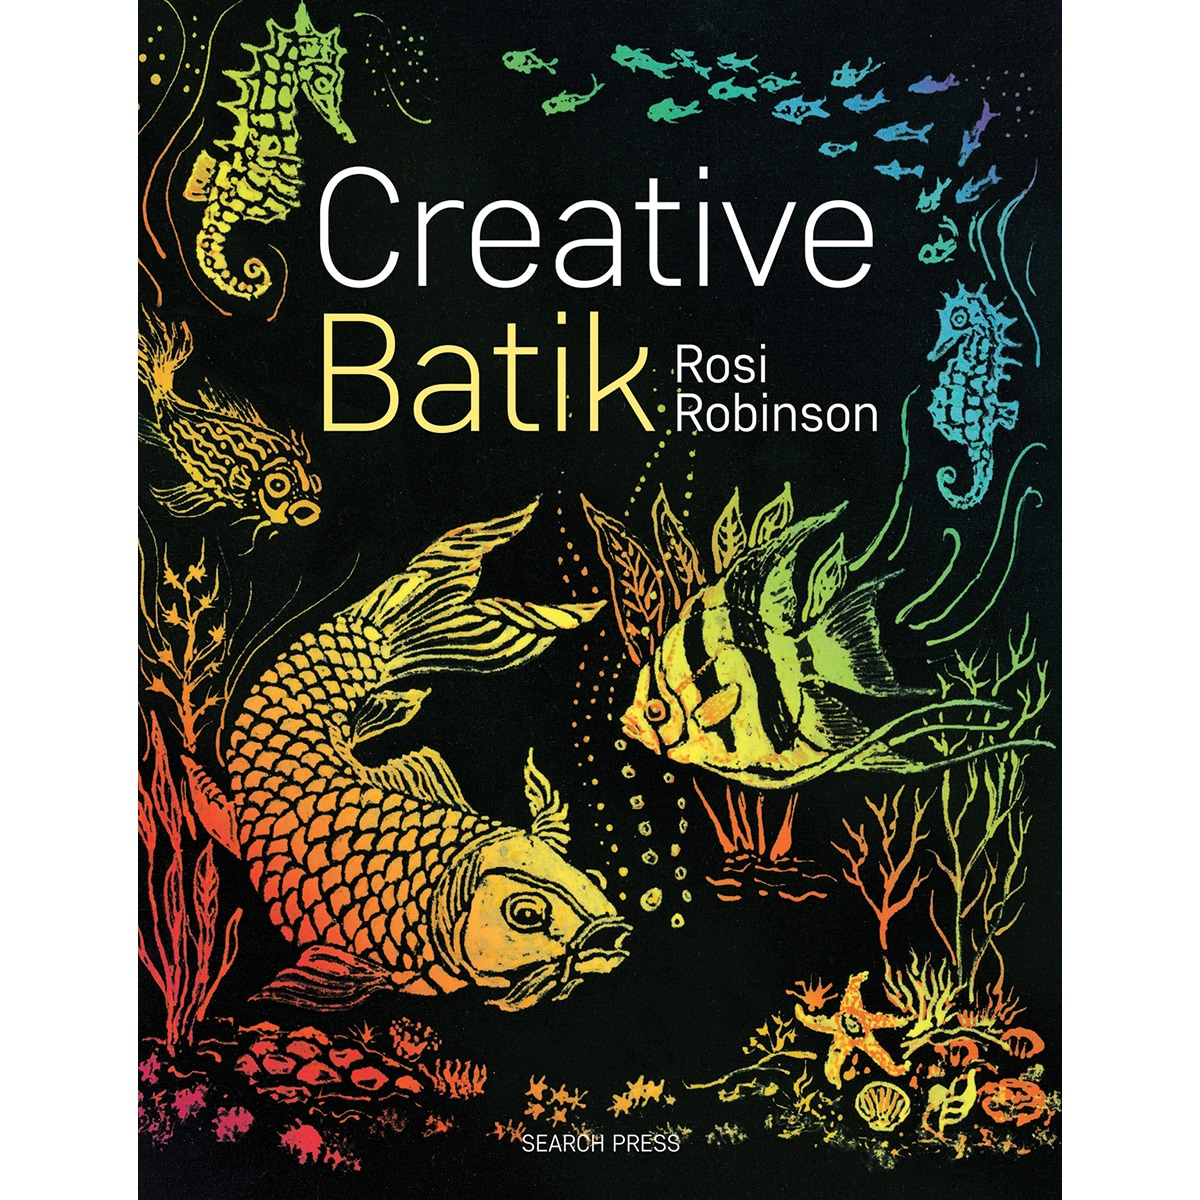 Search Press Books-Creative Batik (Creative Batik), Multi